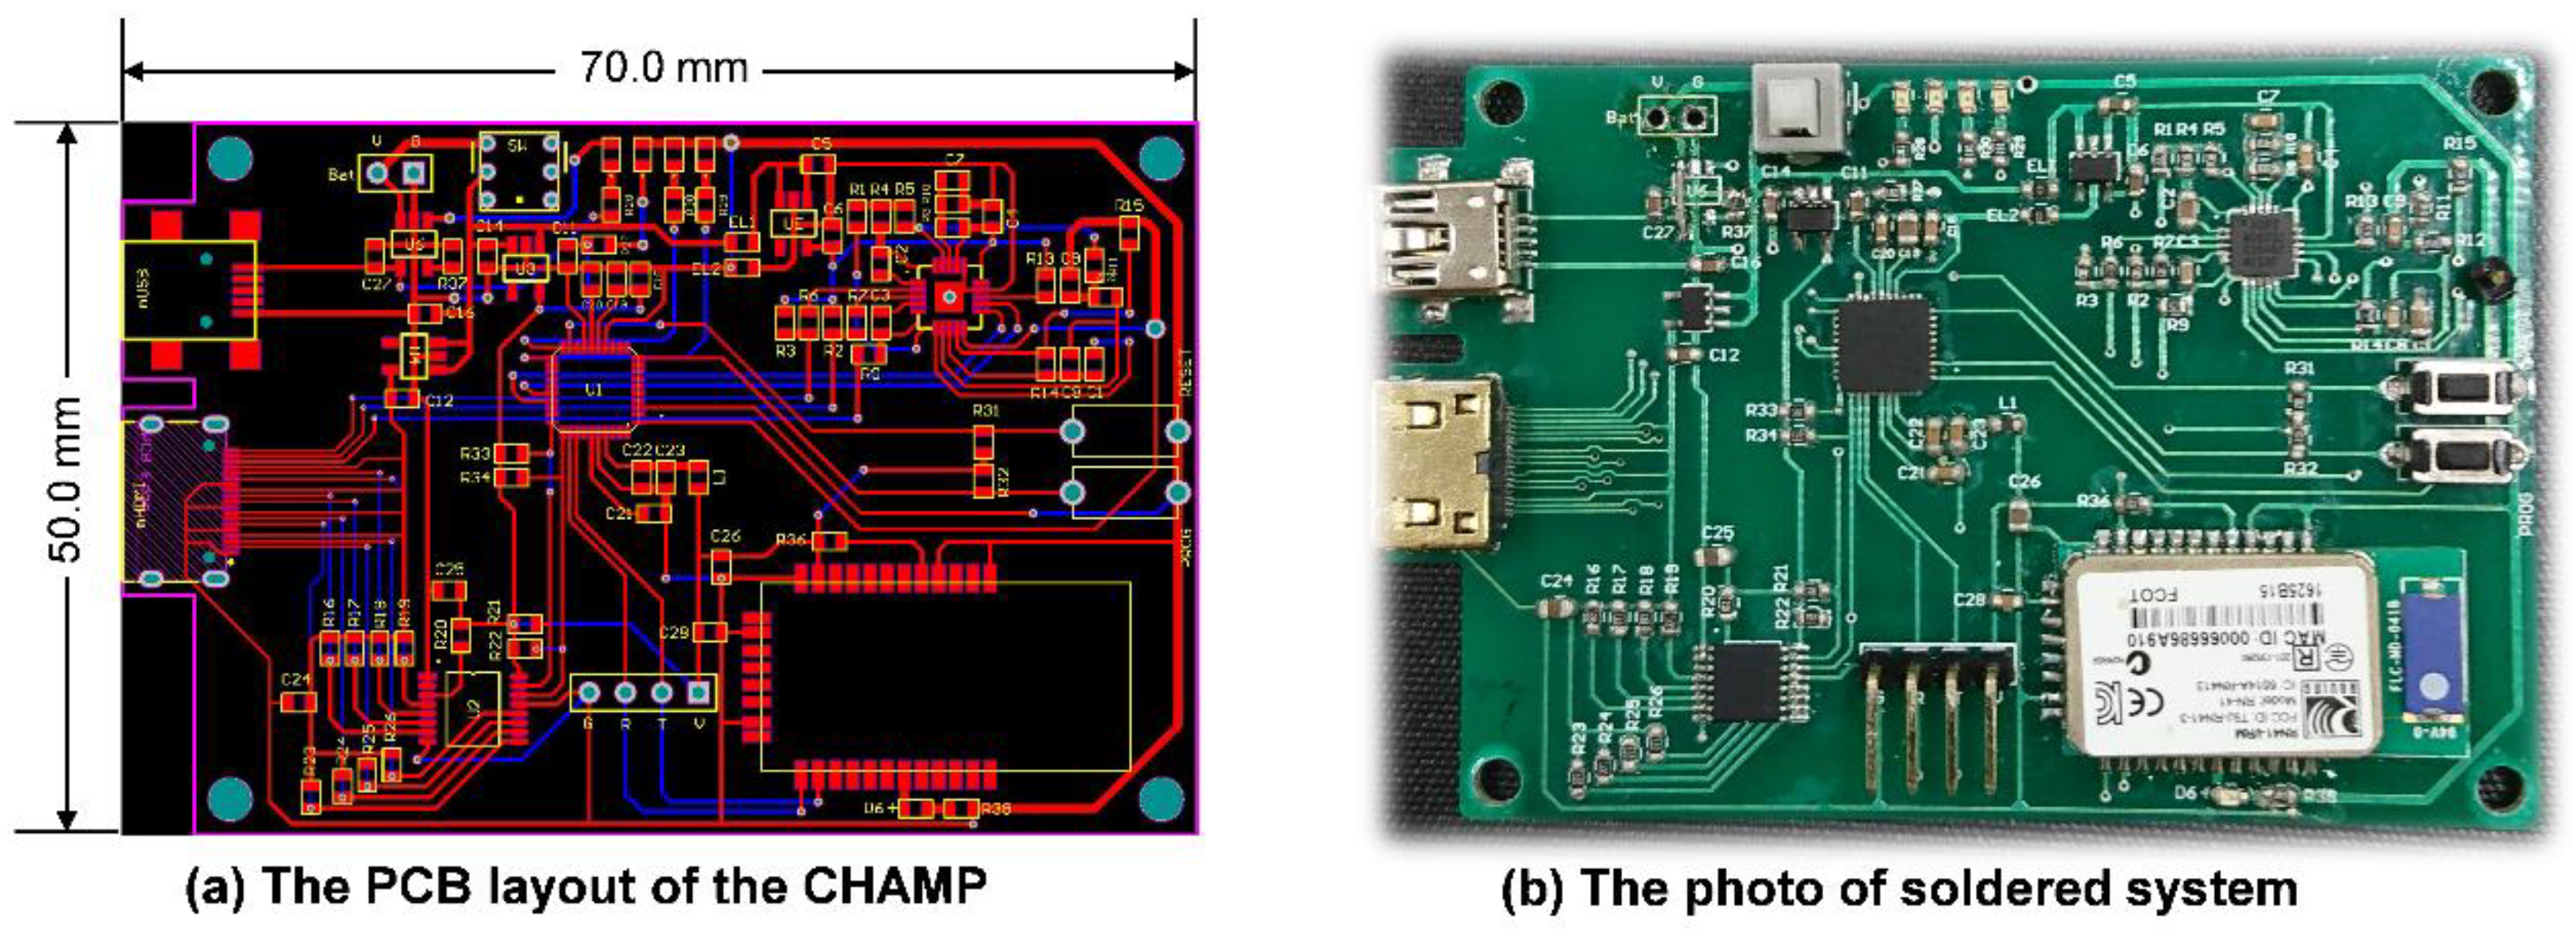 Sensors Free Full Text Realization And Technology Acceptance Figure 2 The Components Layout Of This Circuit Figures No